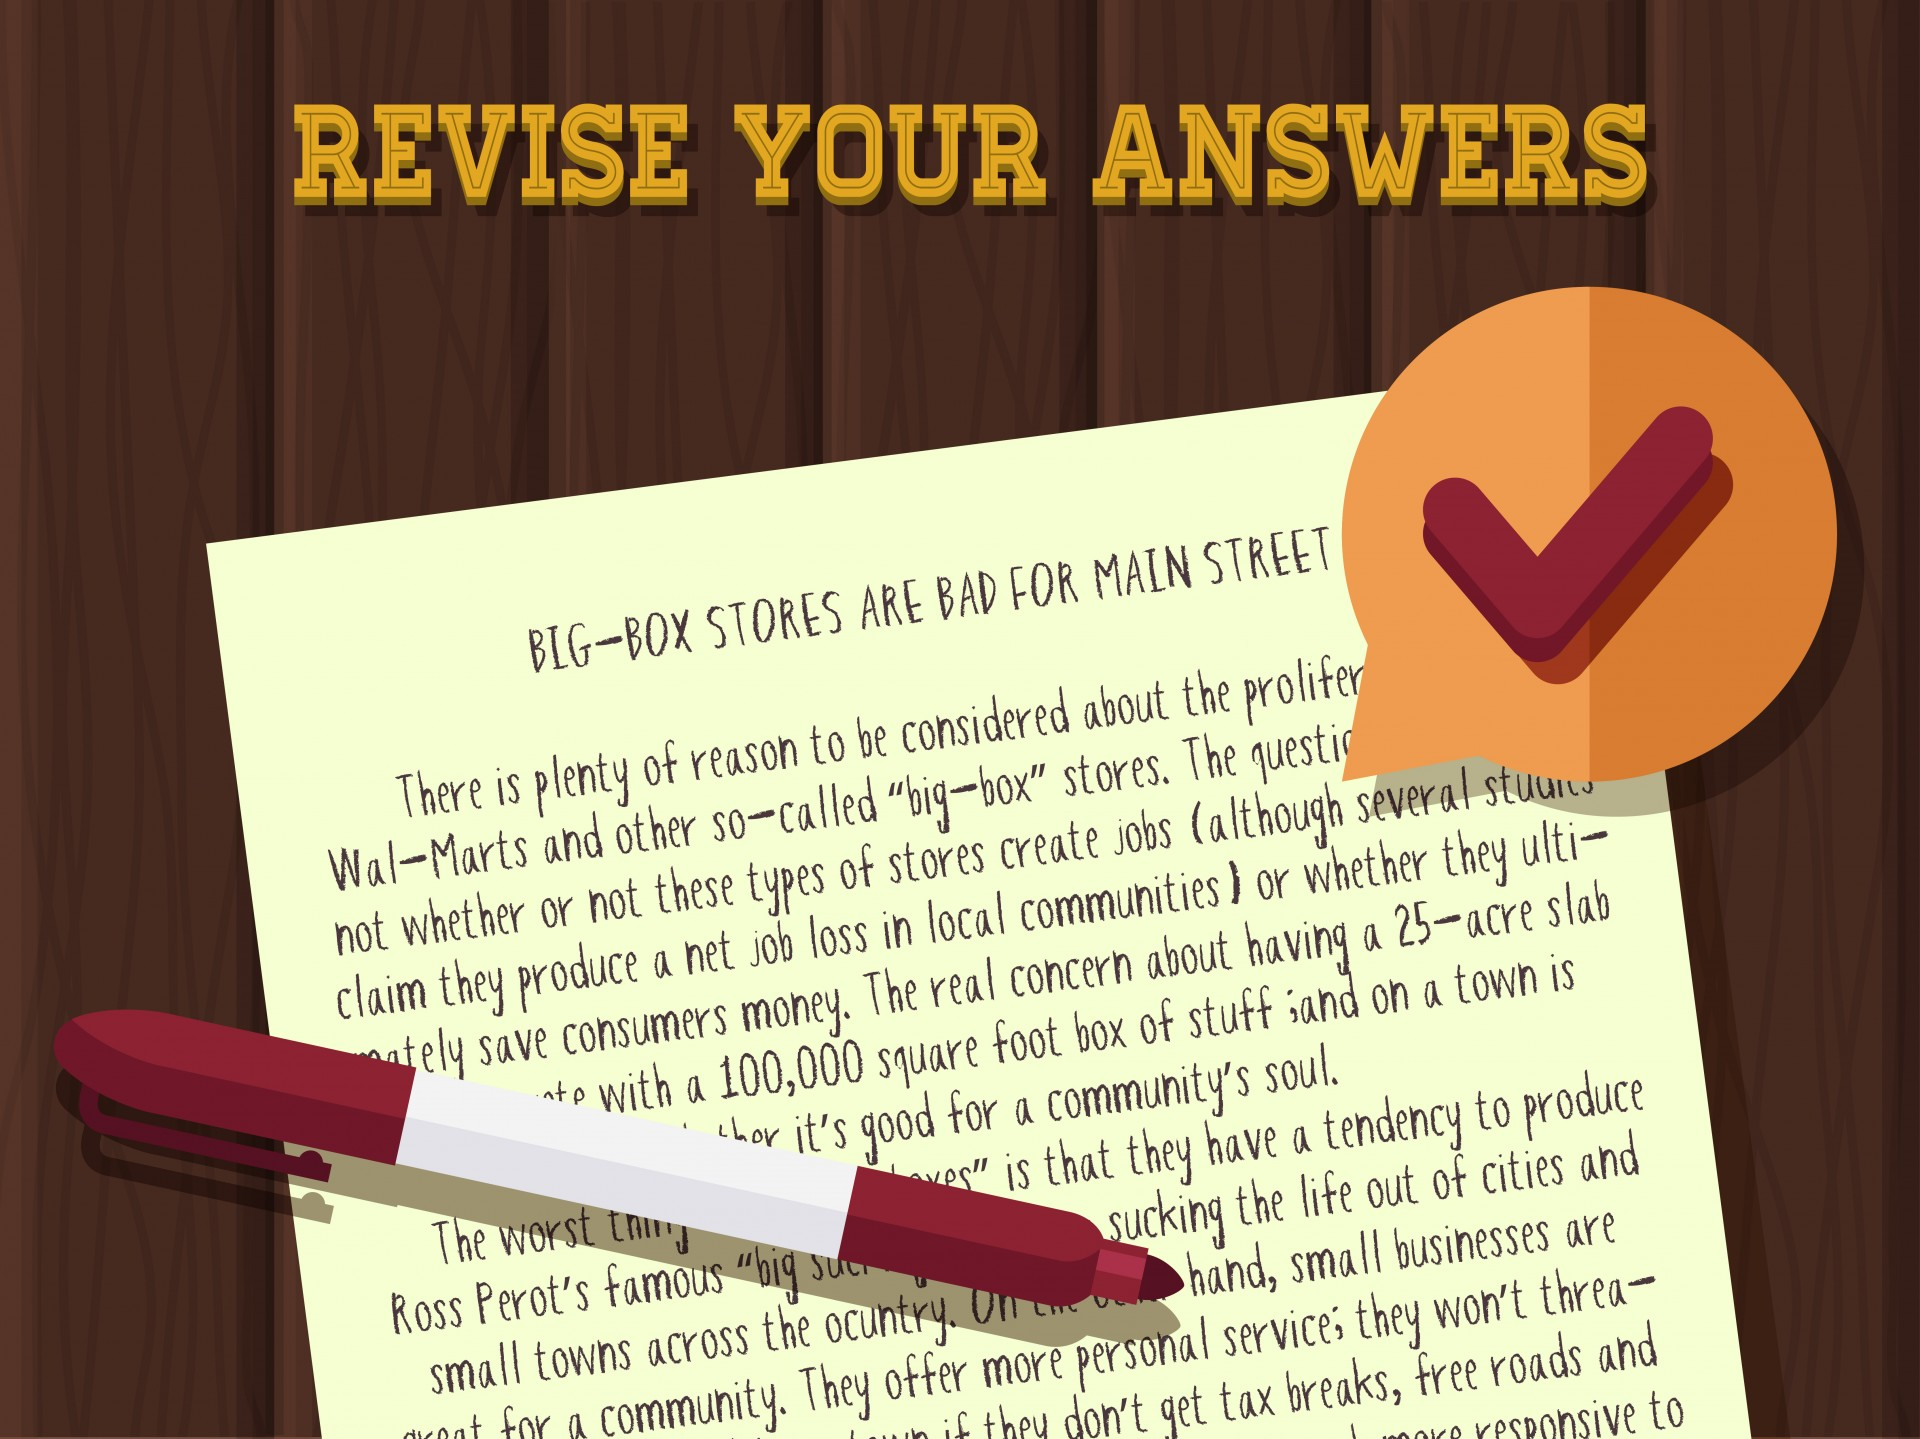 018 Prepare For An Essay Exam Step Example How To Memorise In Unbelievable Hour A Few Hours Remember 1 1920